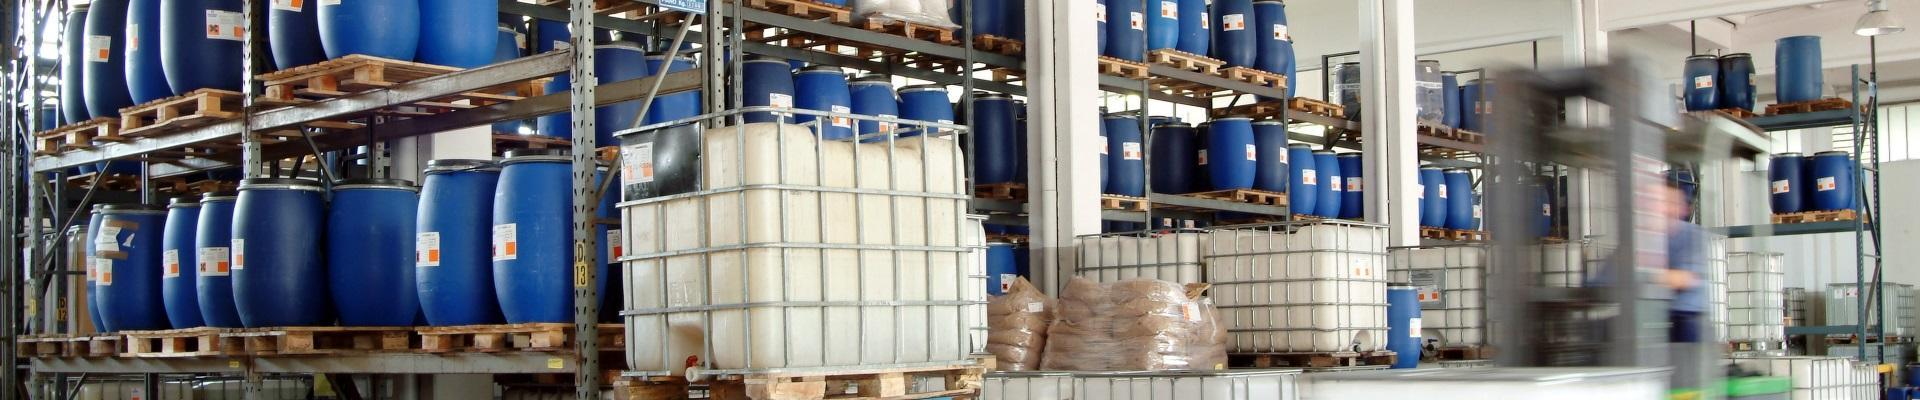 IBC Container & Plastfat